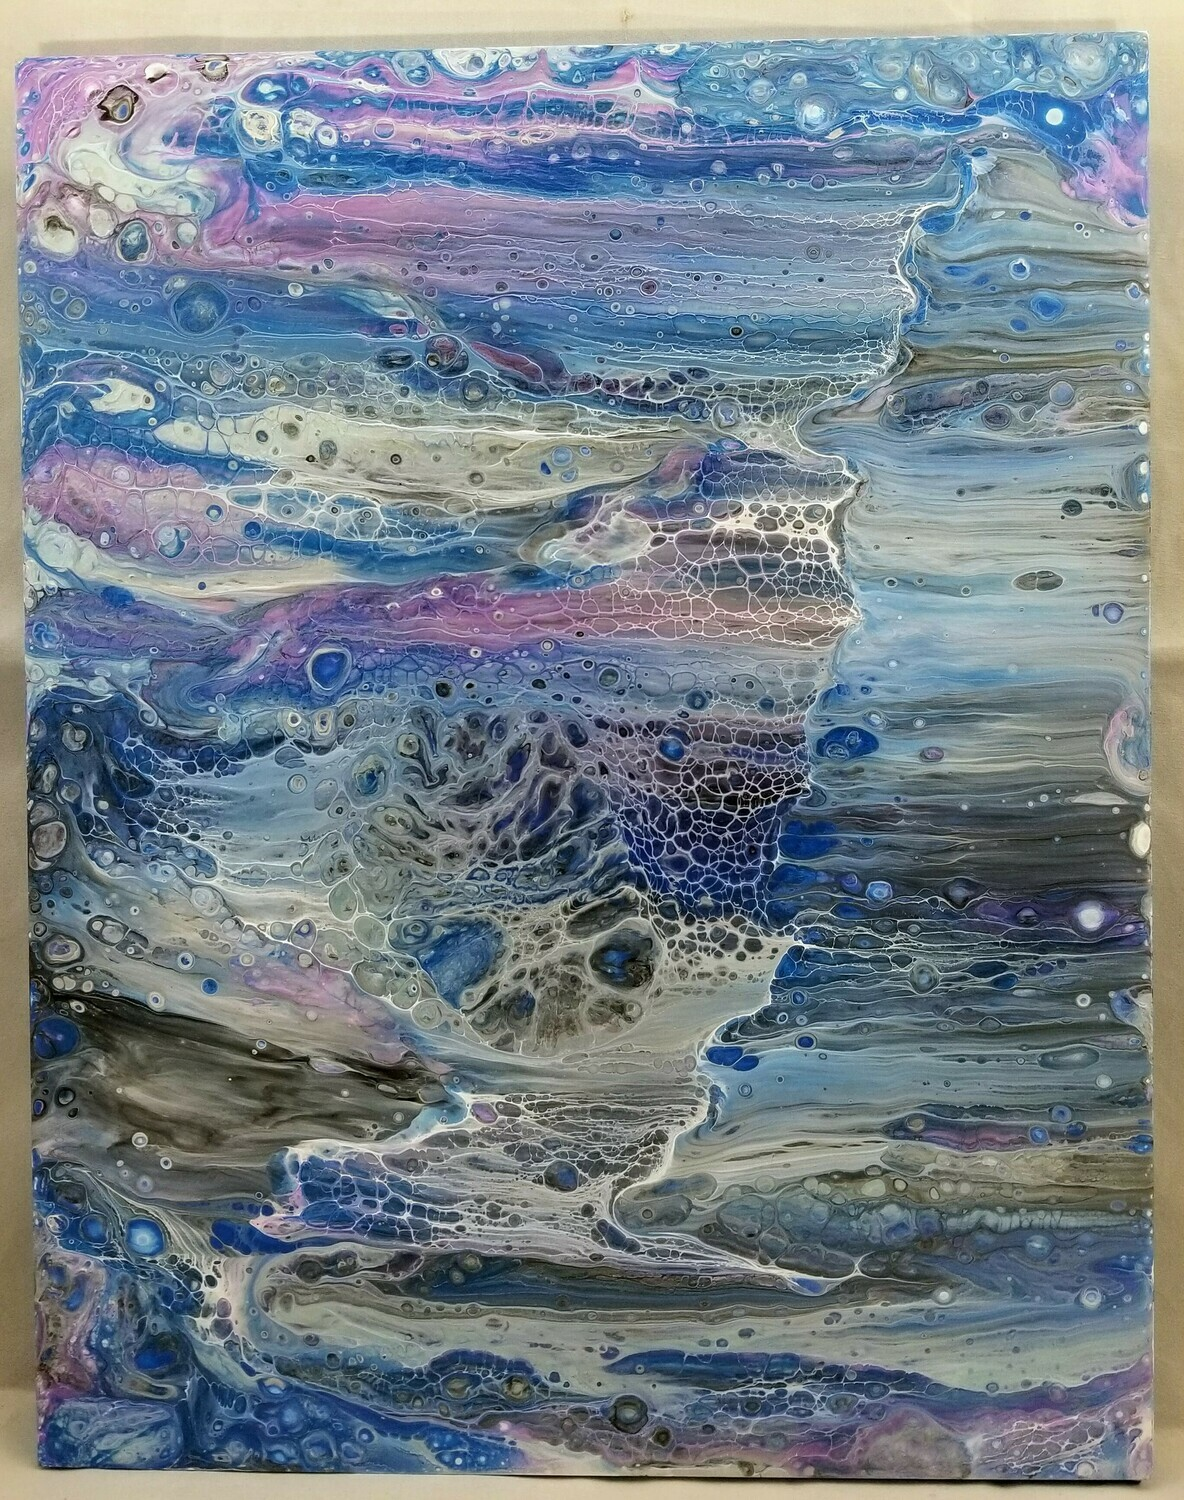 11x14 Abstract Painting on Glass